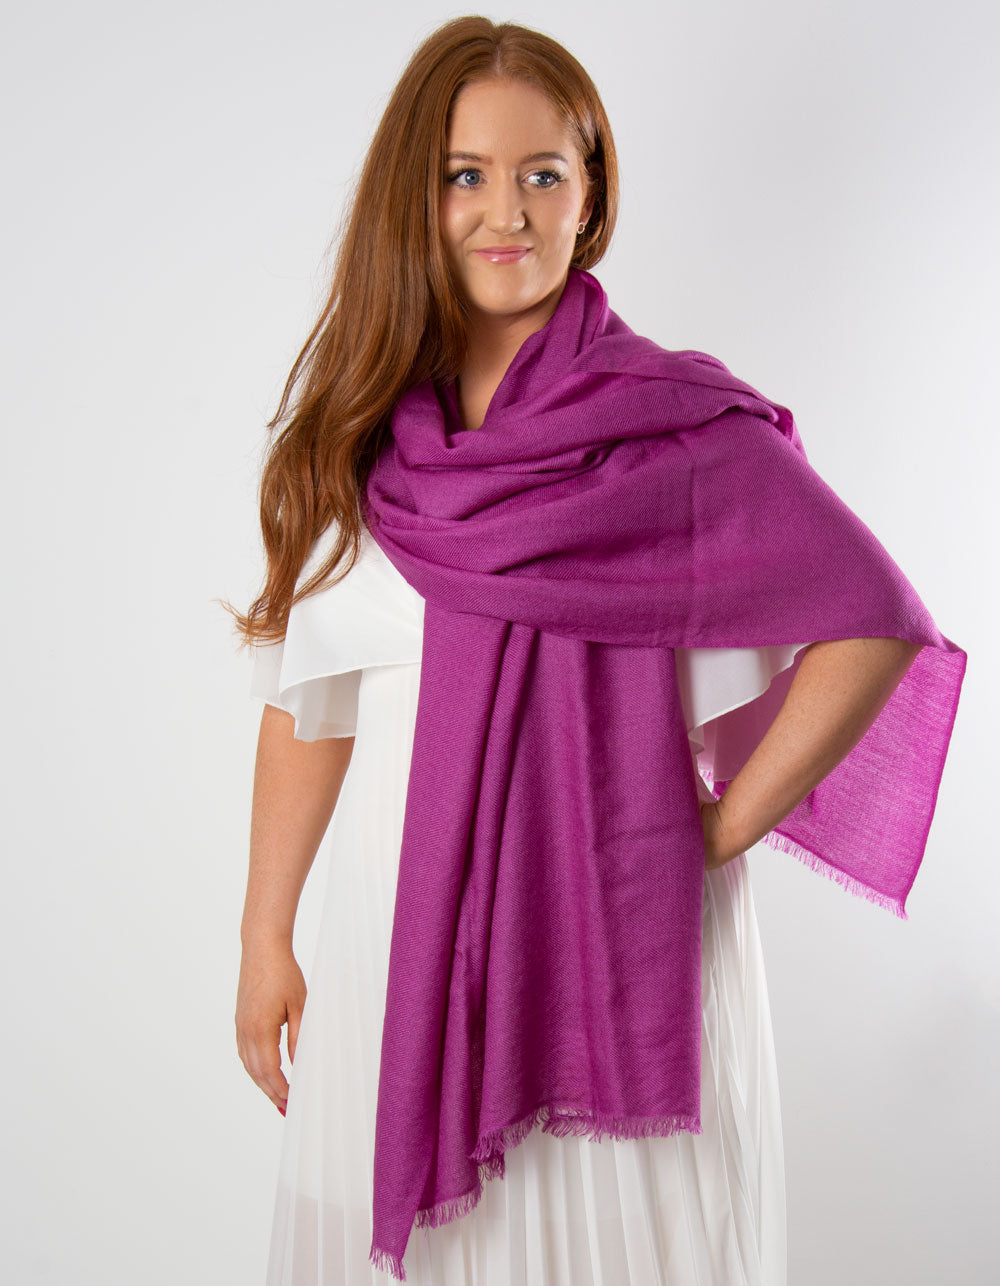 an image showing a cashmere wedding pashmina in purple